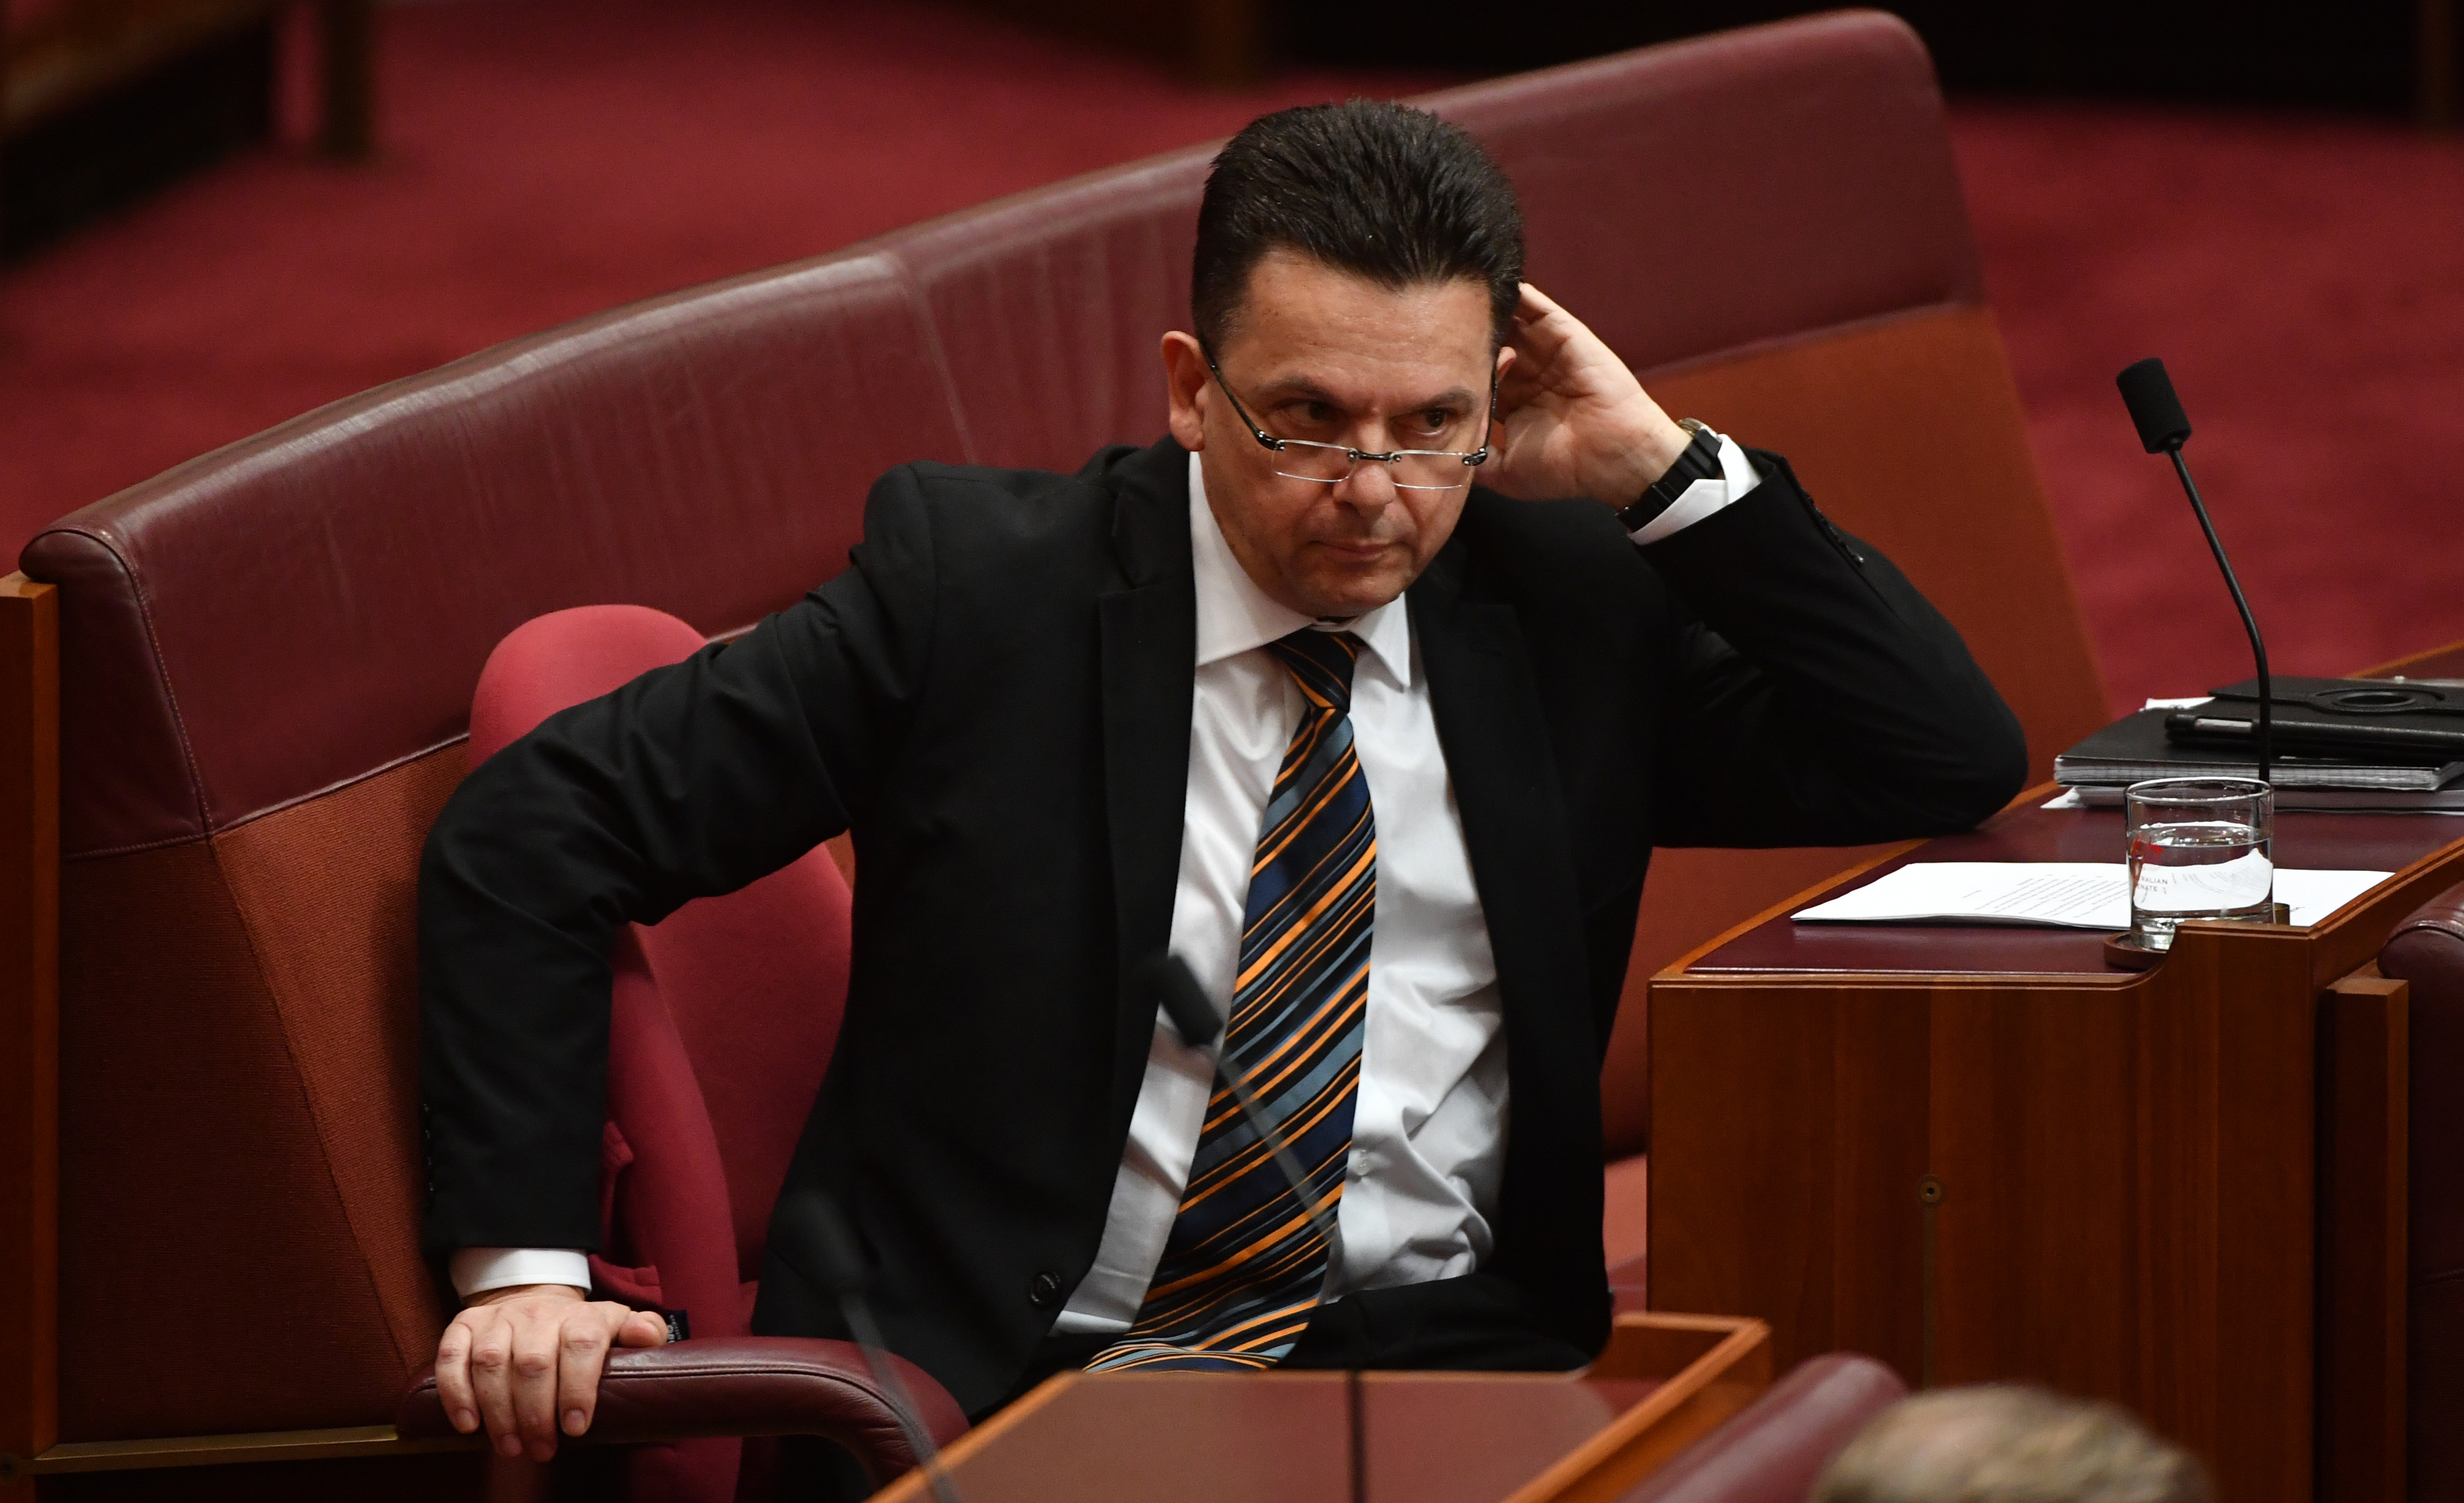 Independent senator Nick Xenophon has said Mr Joyce was not doing anything illegal. (AAP)